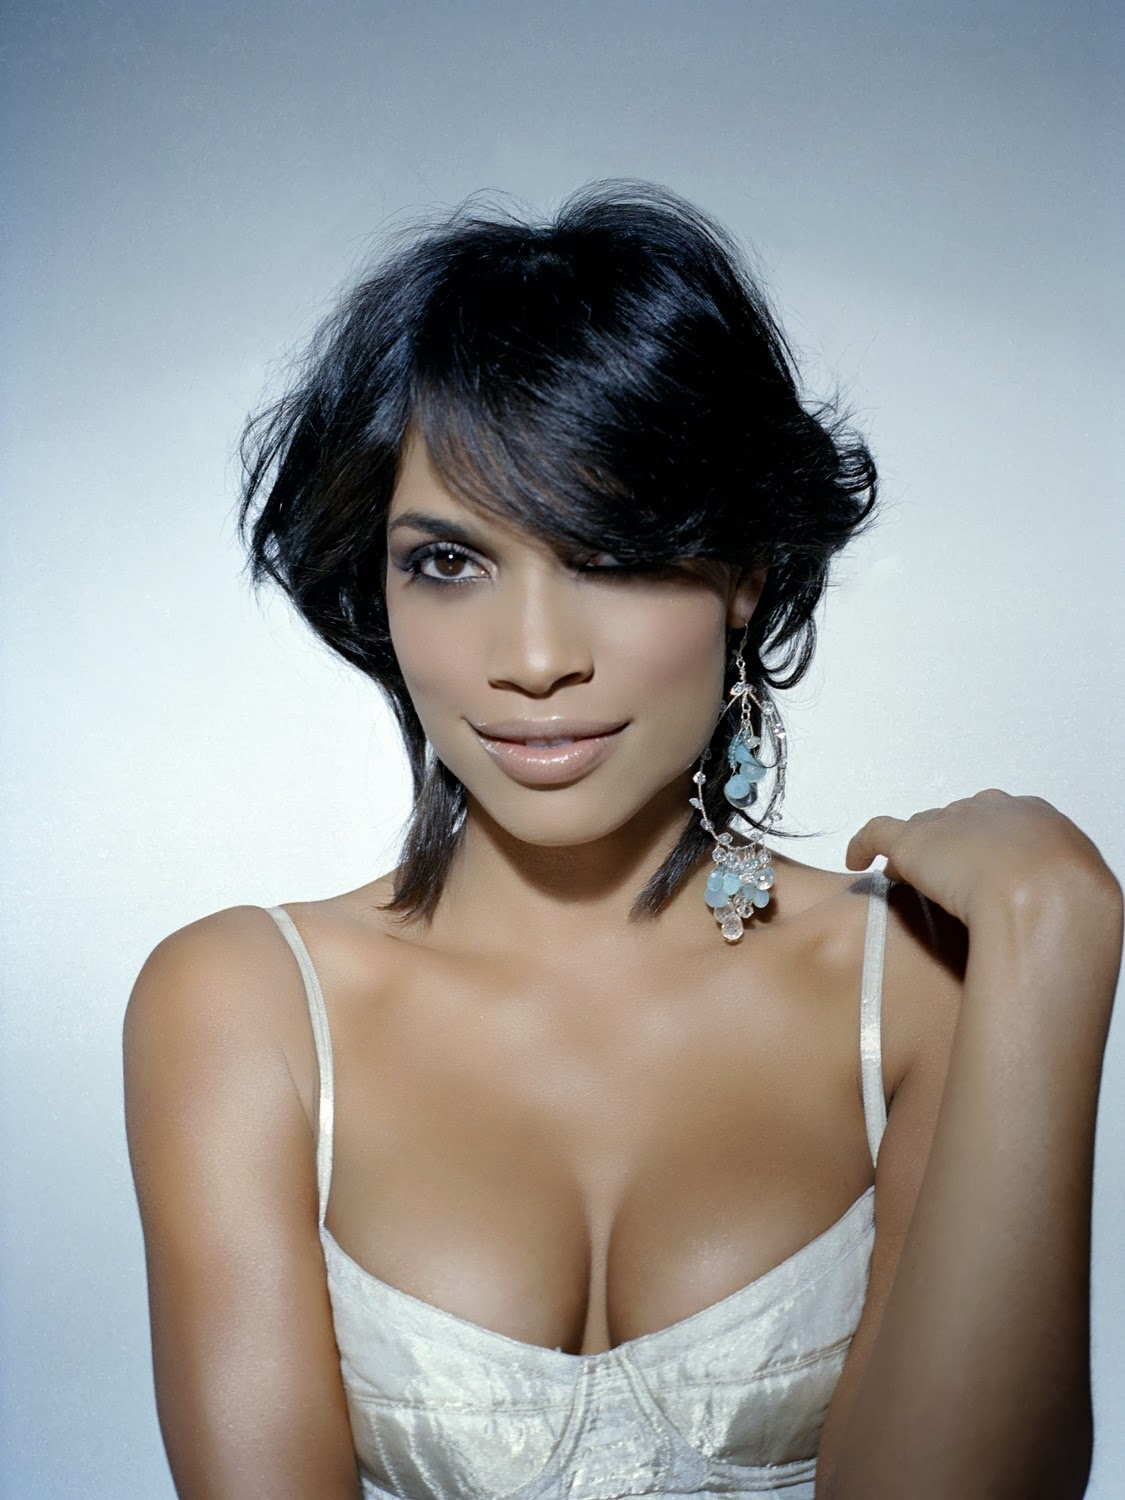 Actress Rosario Dawson Sultry Lingerie Photoshoot Pics